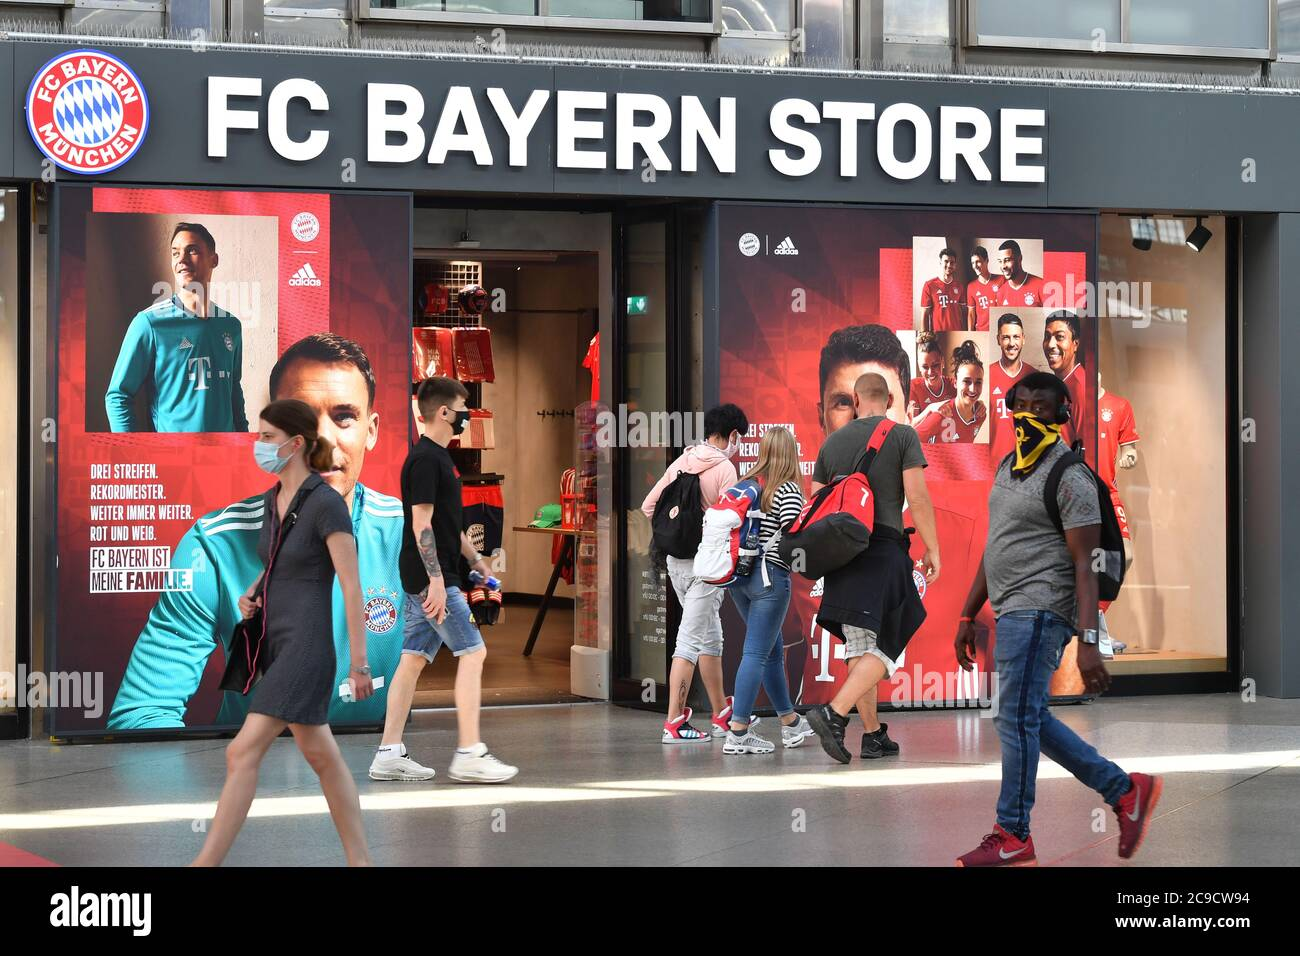 Fc Bayern Munich Fan High Resolution Stock Photography And Images Alamy